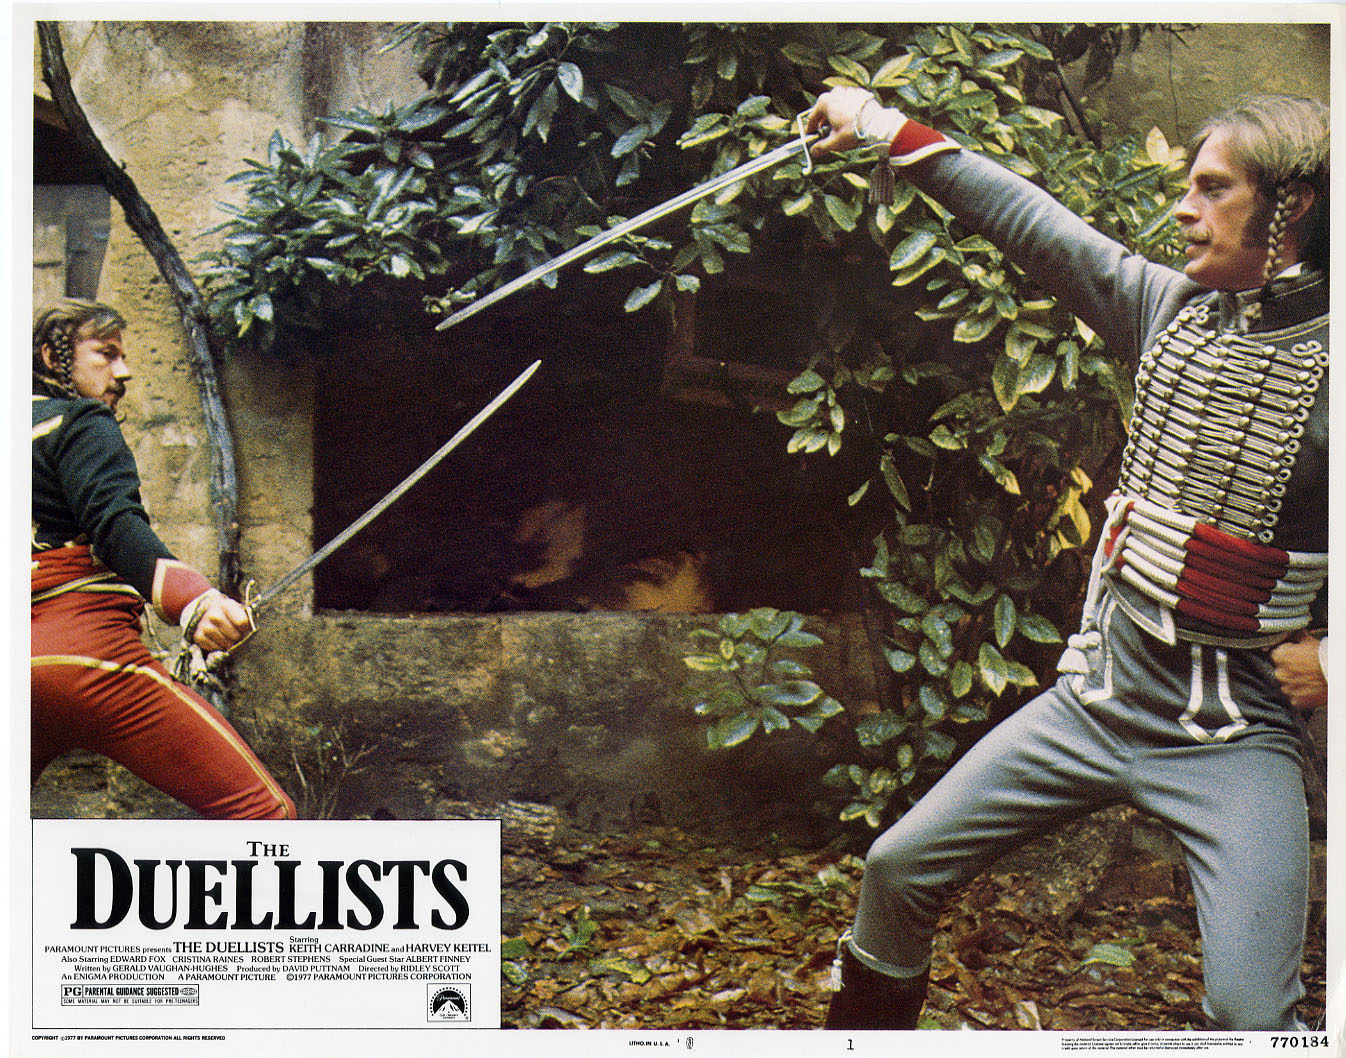 Los duelistas (1977). Imagen: Paramount Pictures / Enigma Productions / Scott Free Enterprises / National Film Finance Corporation (NFFC)